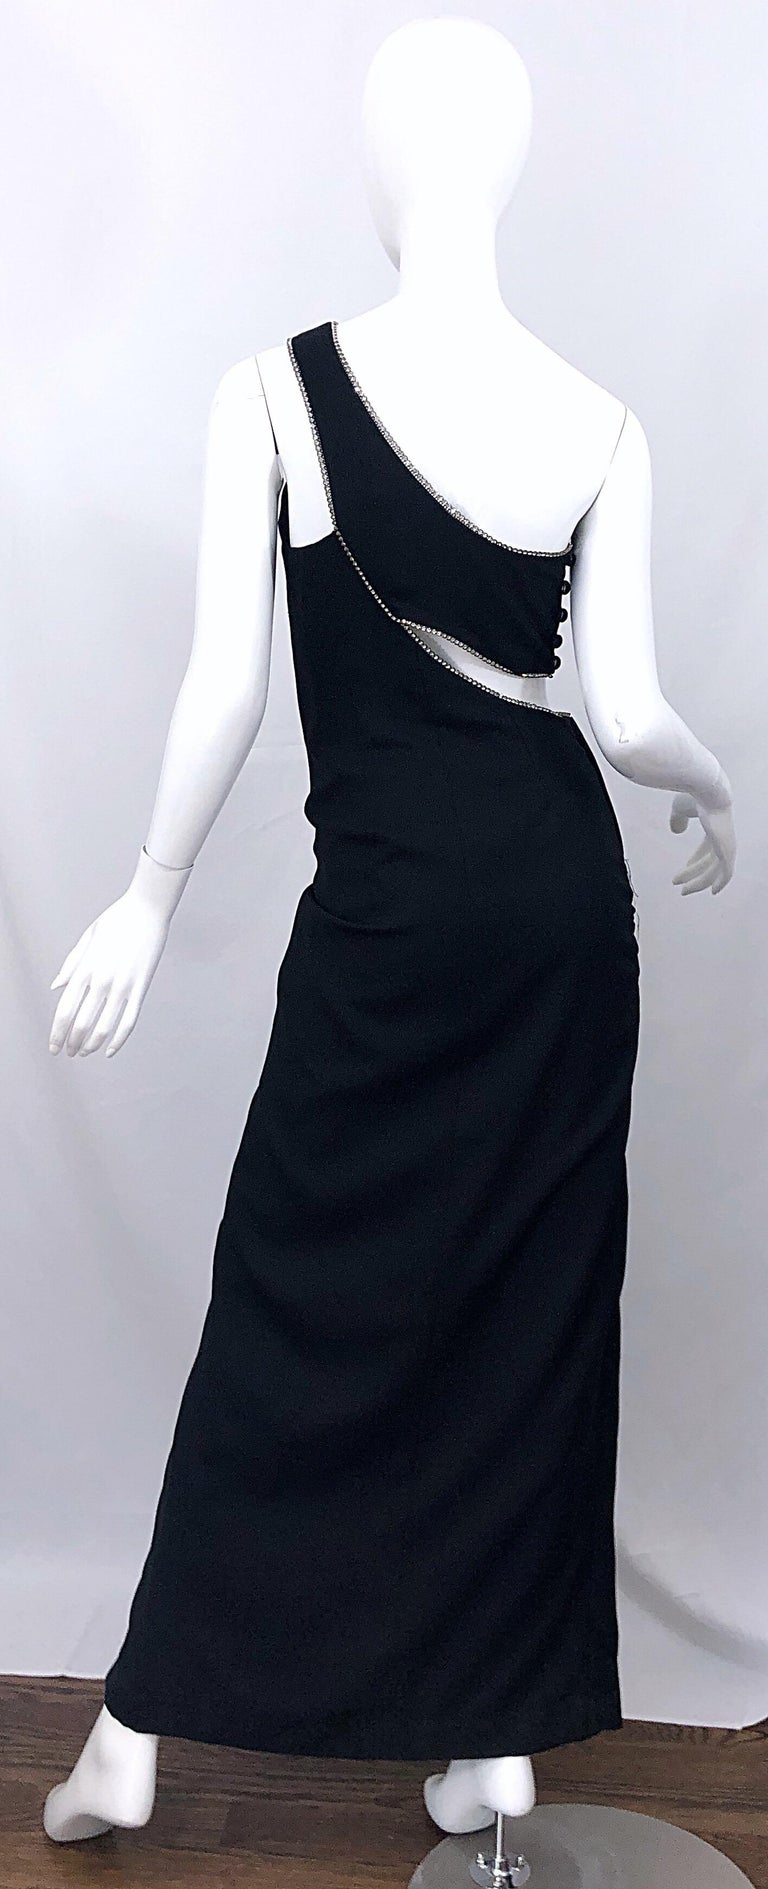 Sexy 1990s Size 6 / 8 Black Crepe Rayon + Rhinestones One Shoulder Cut Out Gown For Sale 1